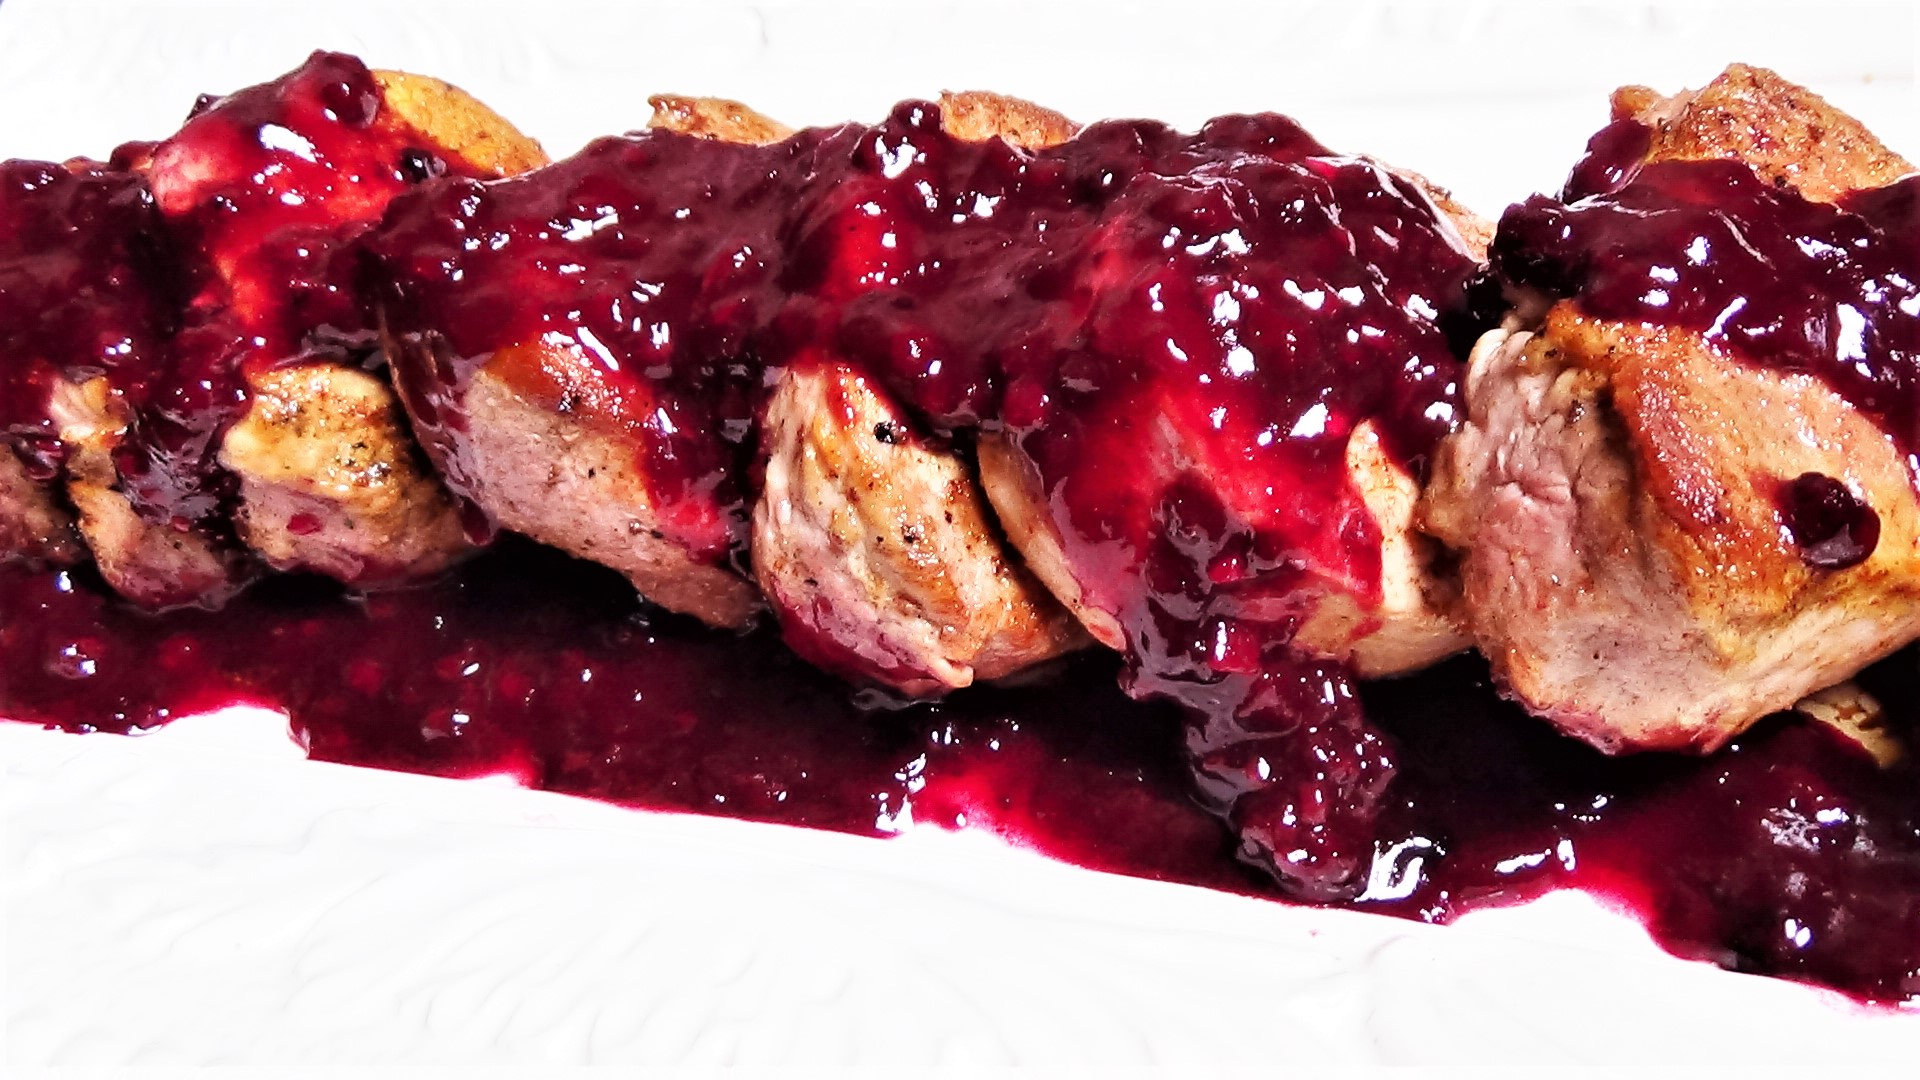 Medallions of Pork with Blackberry Sauce